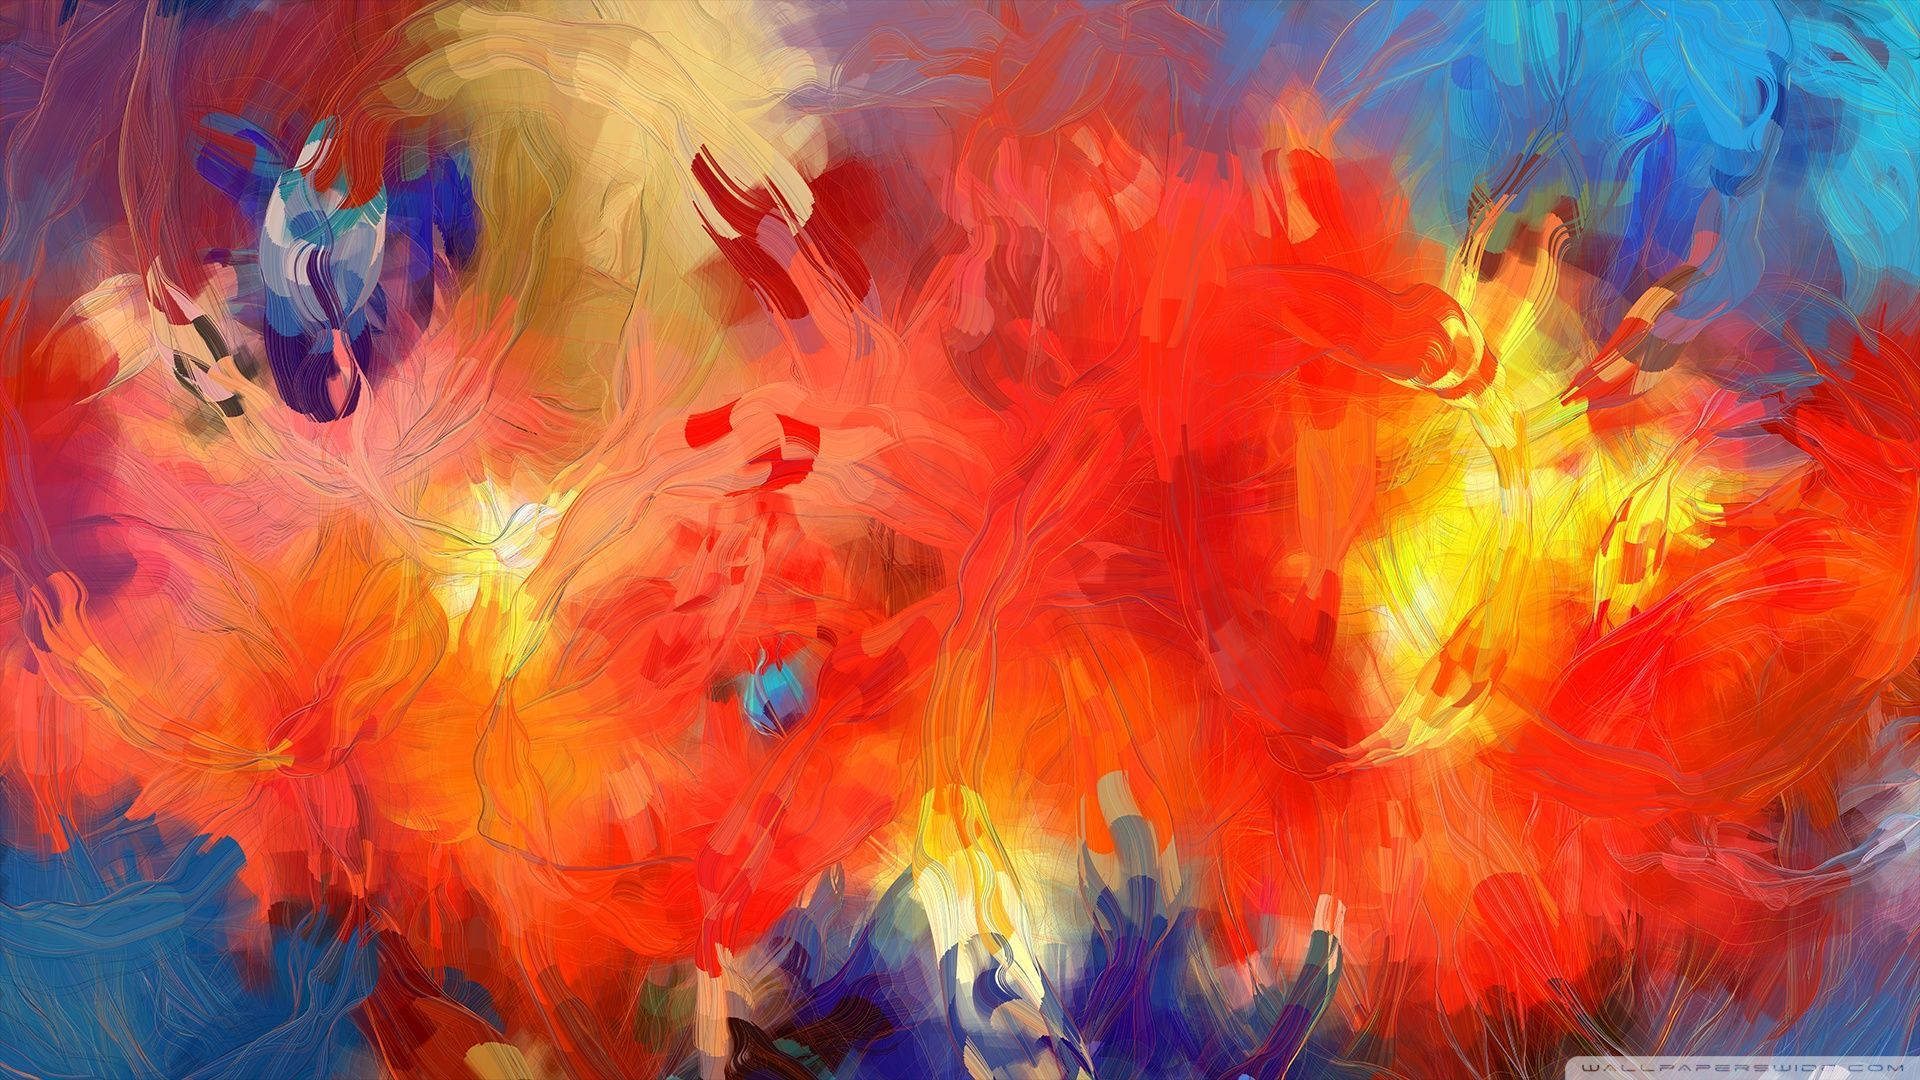 Abstract Art Backgrounds - Wallpaper Cave